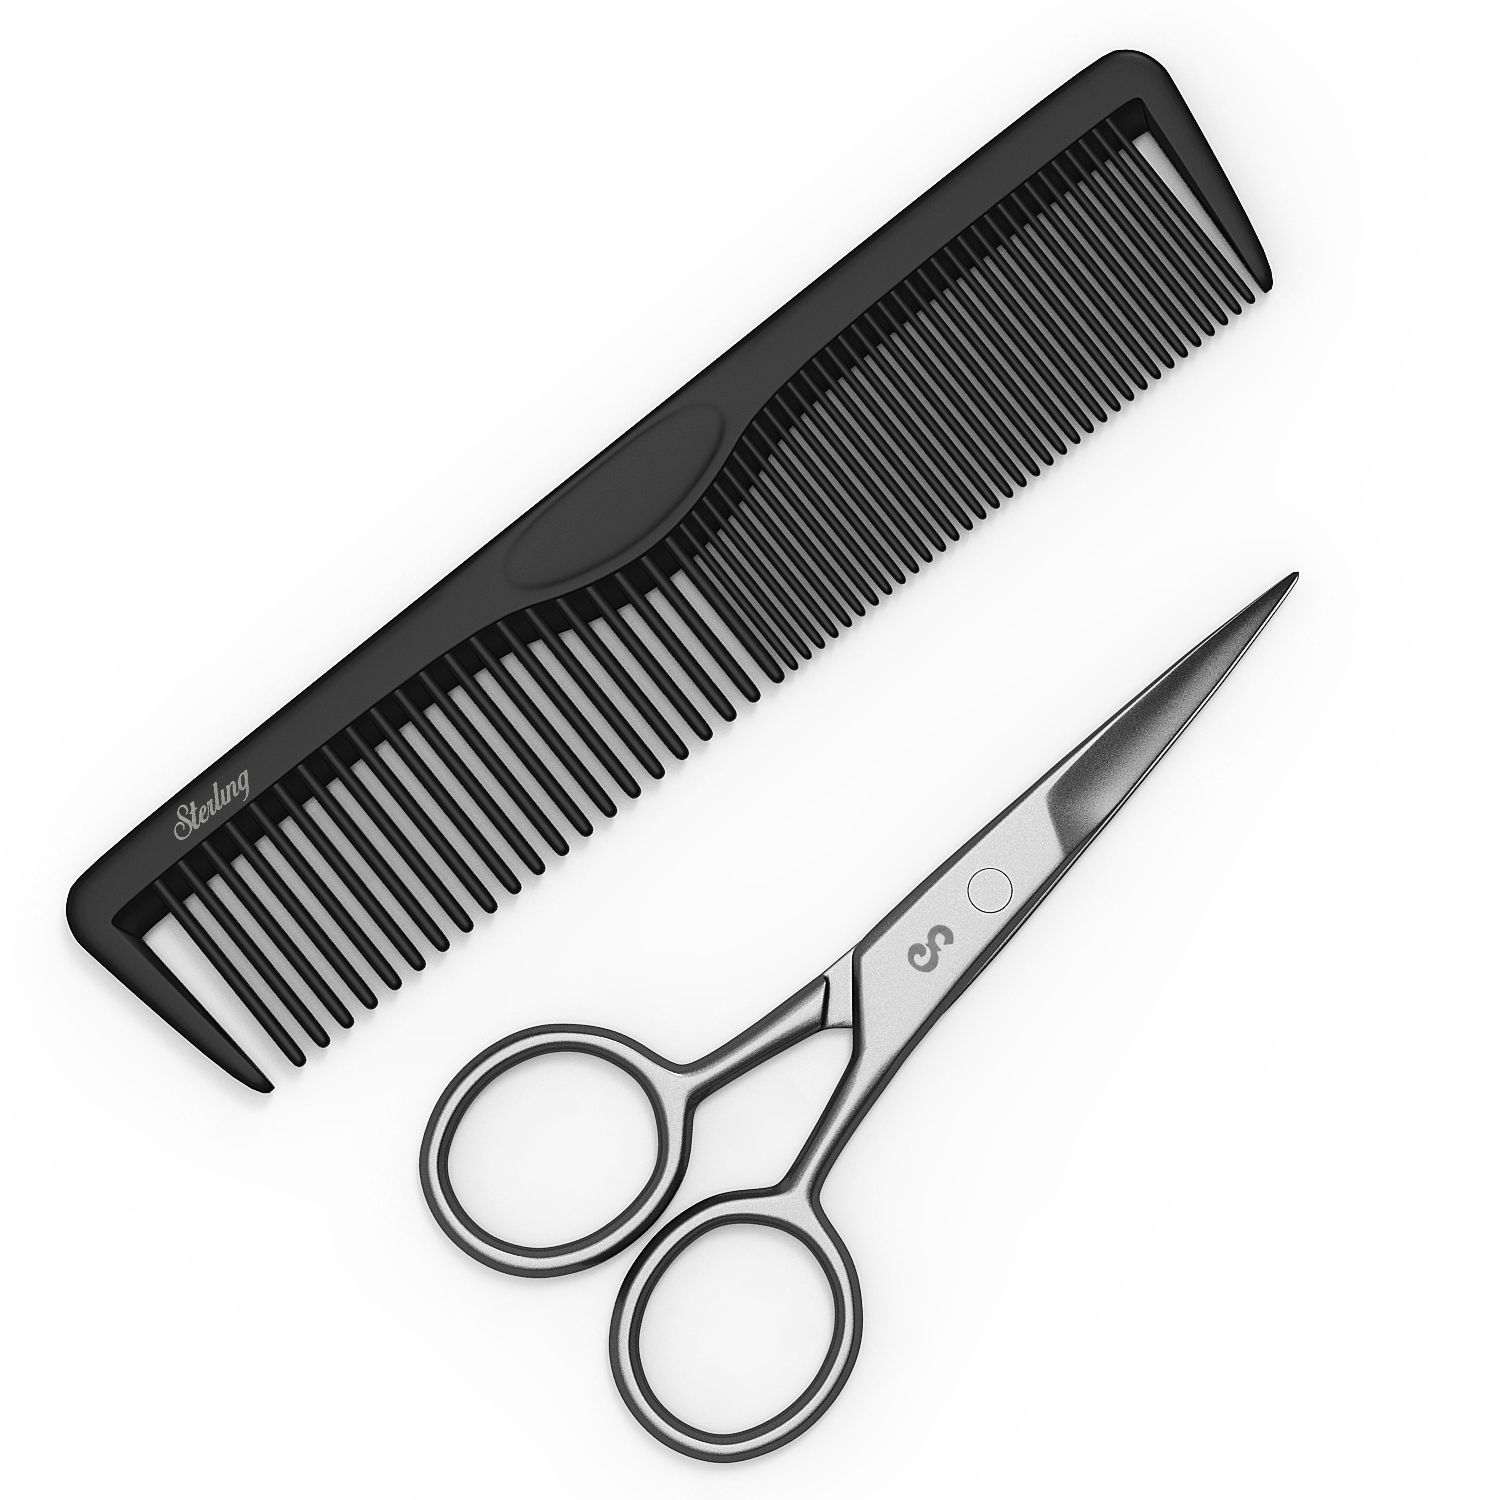 4  Facial Hair Scissors  amp  Comb for Beards, Mustaches, Eyebrows